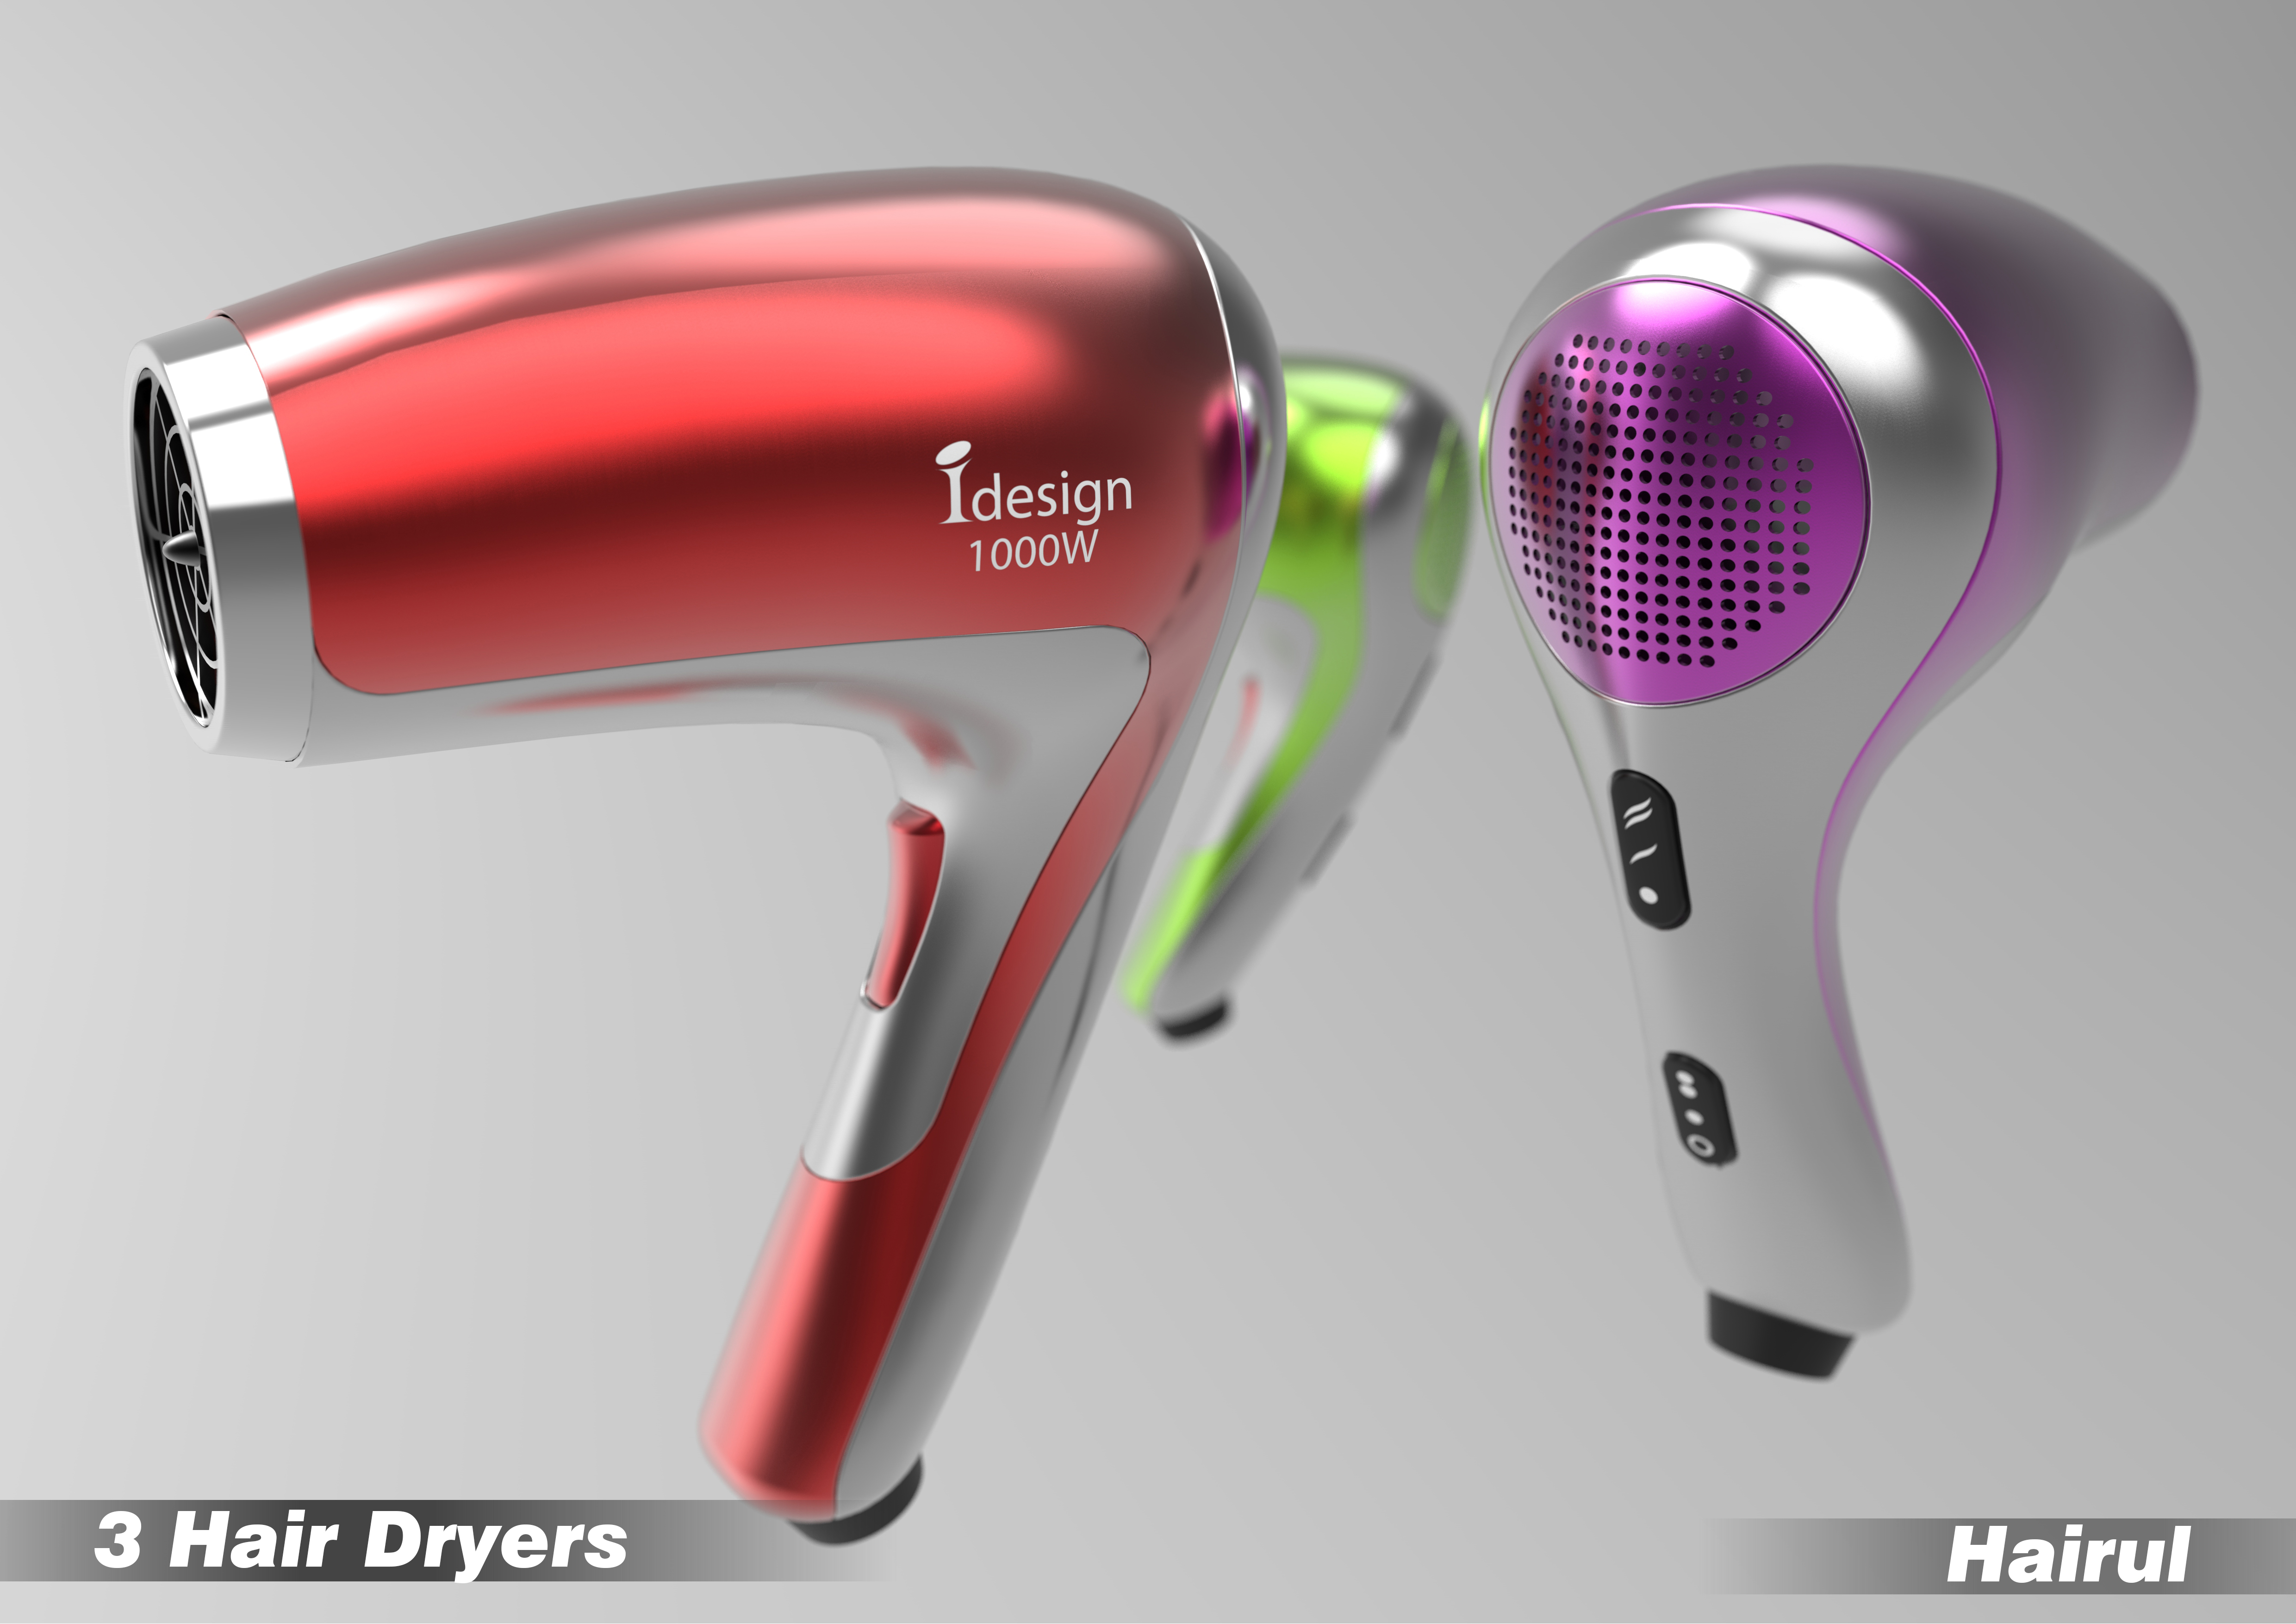 product modeling and visualisation lancers d product modeling and visualisation 3d model hairdryer self initiative project